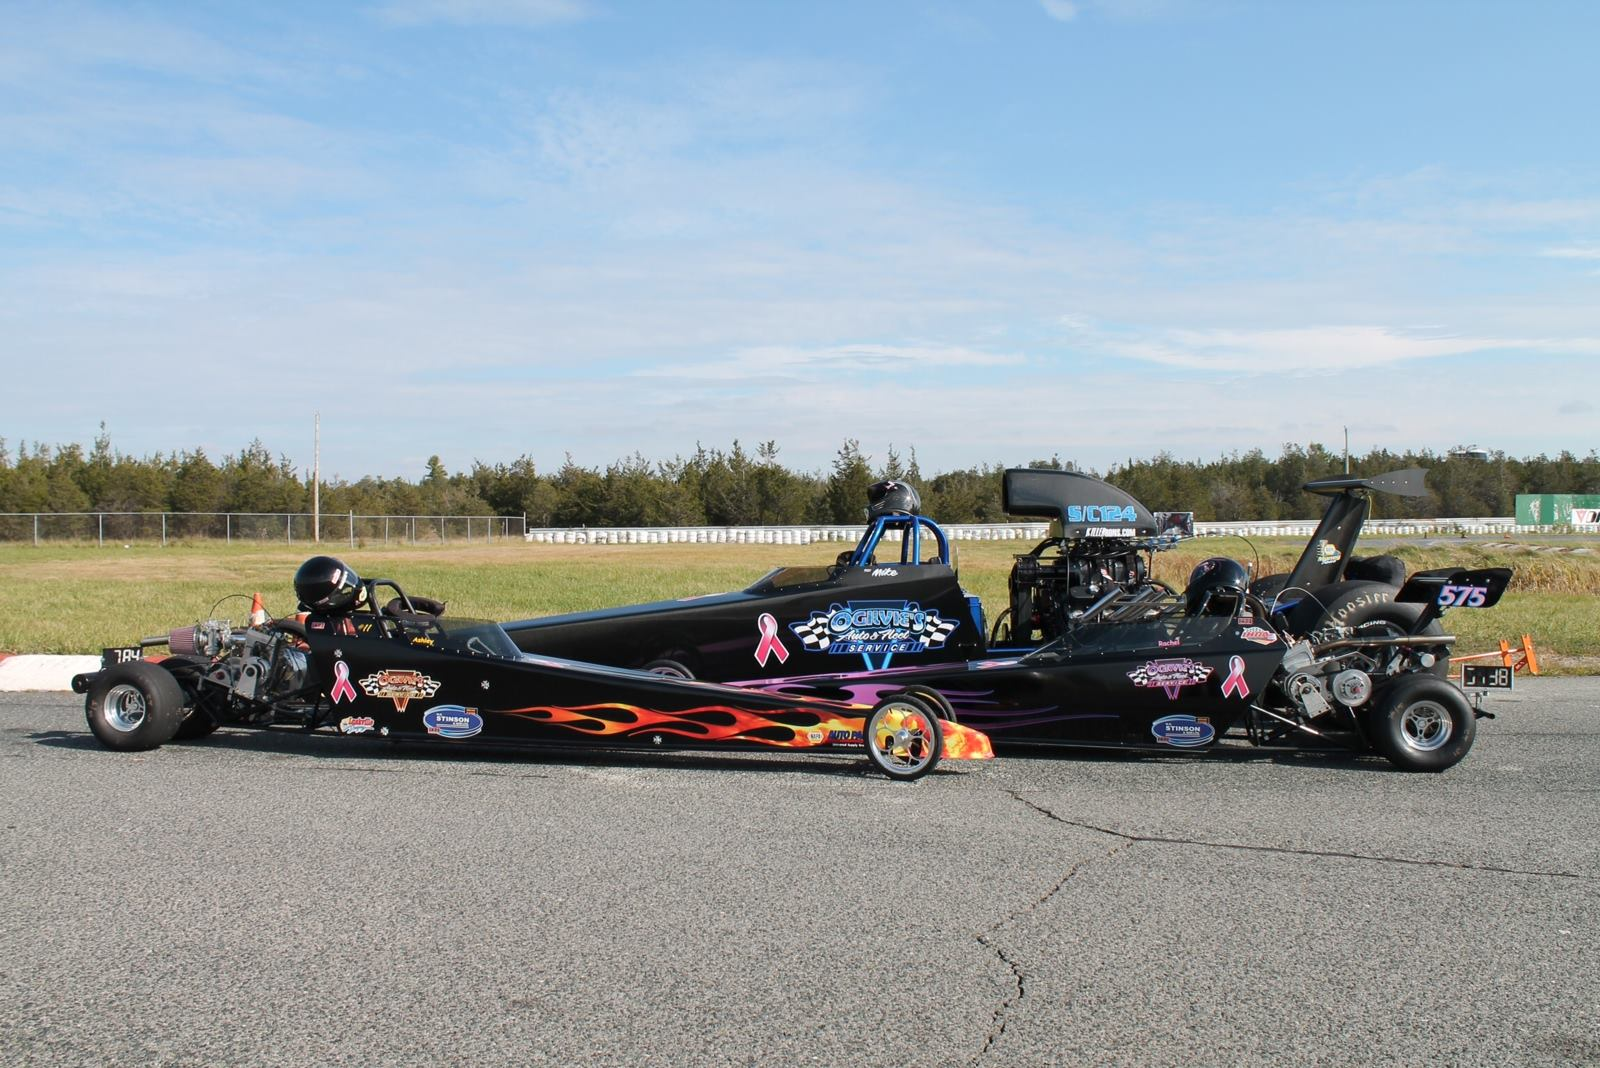 dragster and two junior dragsters parked